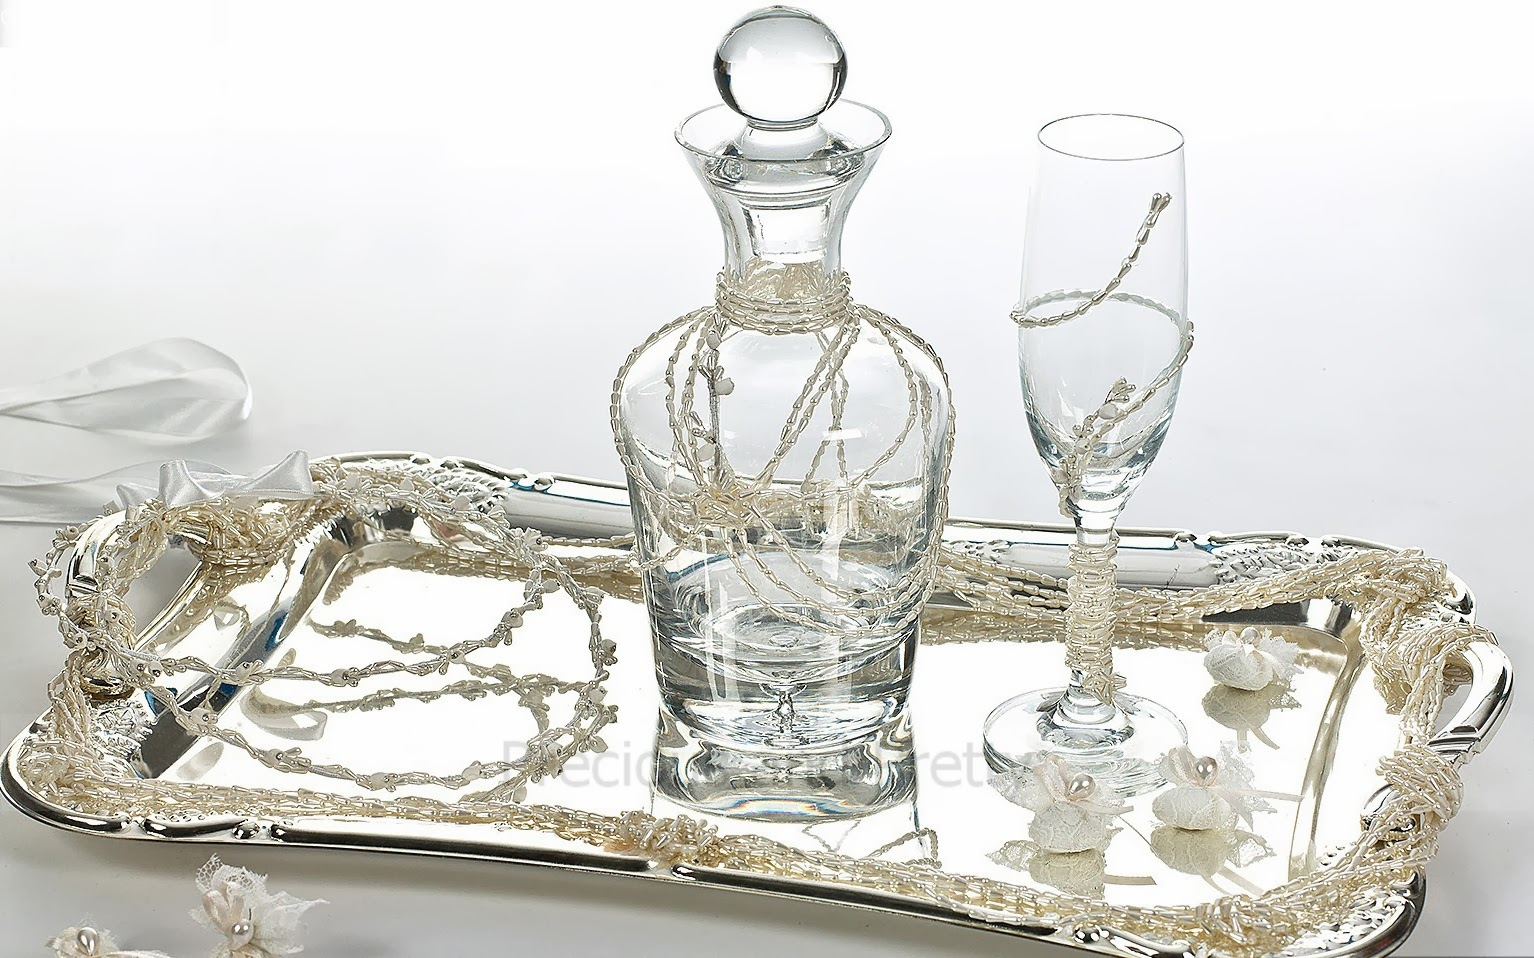 Carafe wine set made in Greece vintage style